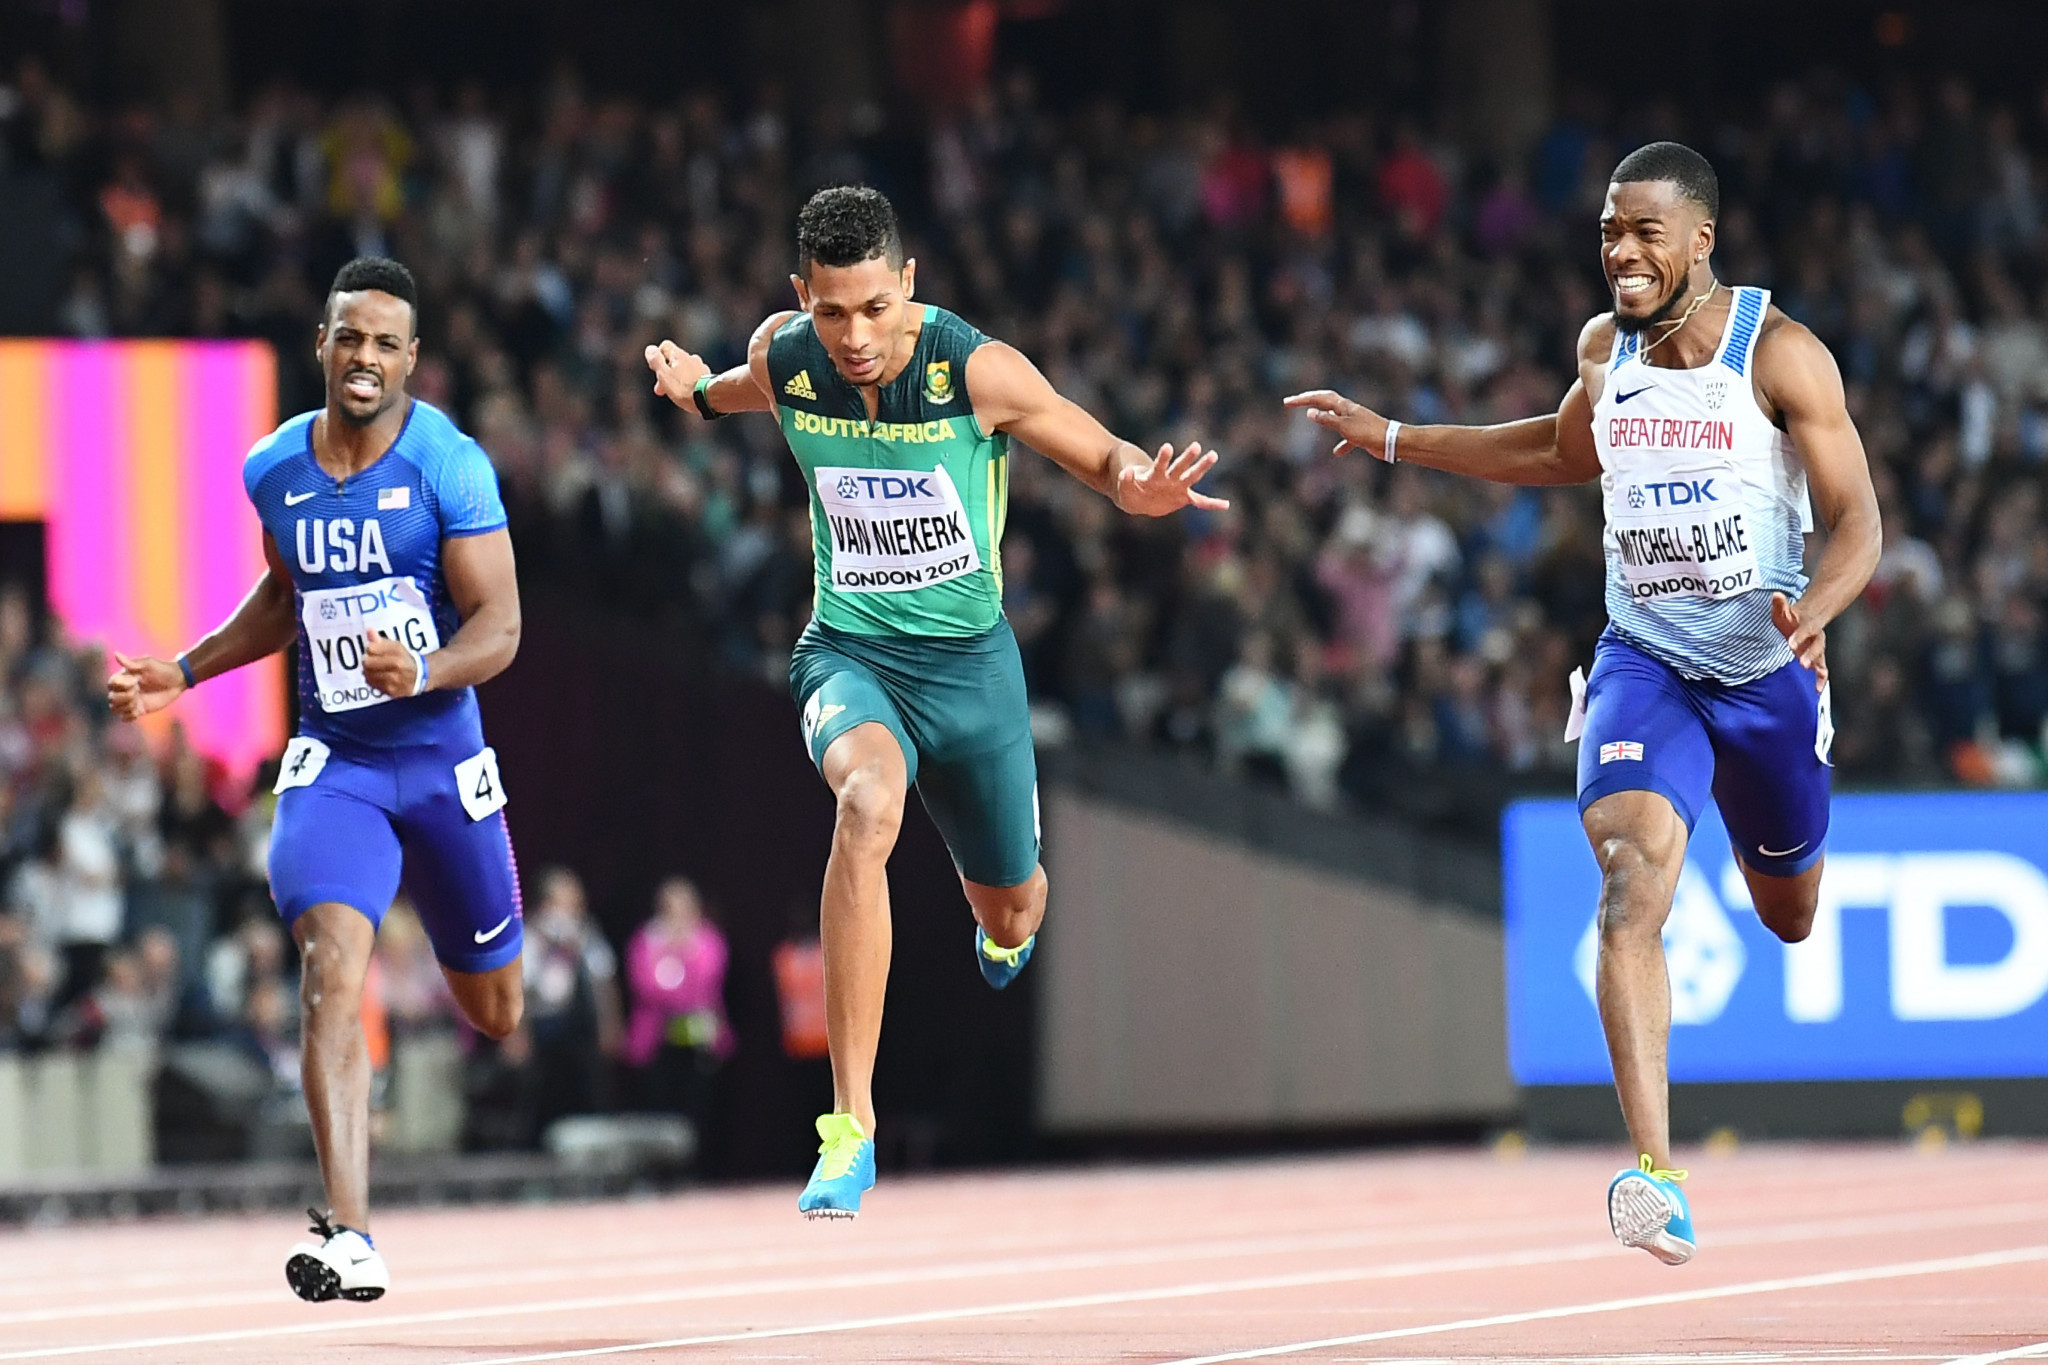 South Africa's Wayde van Niekerk had hoped to compete in the 100 and 200m in Gold Coast ©Getty Images